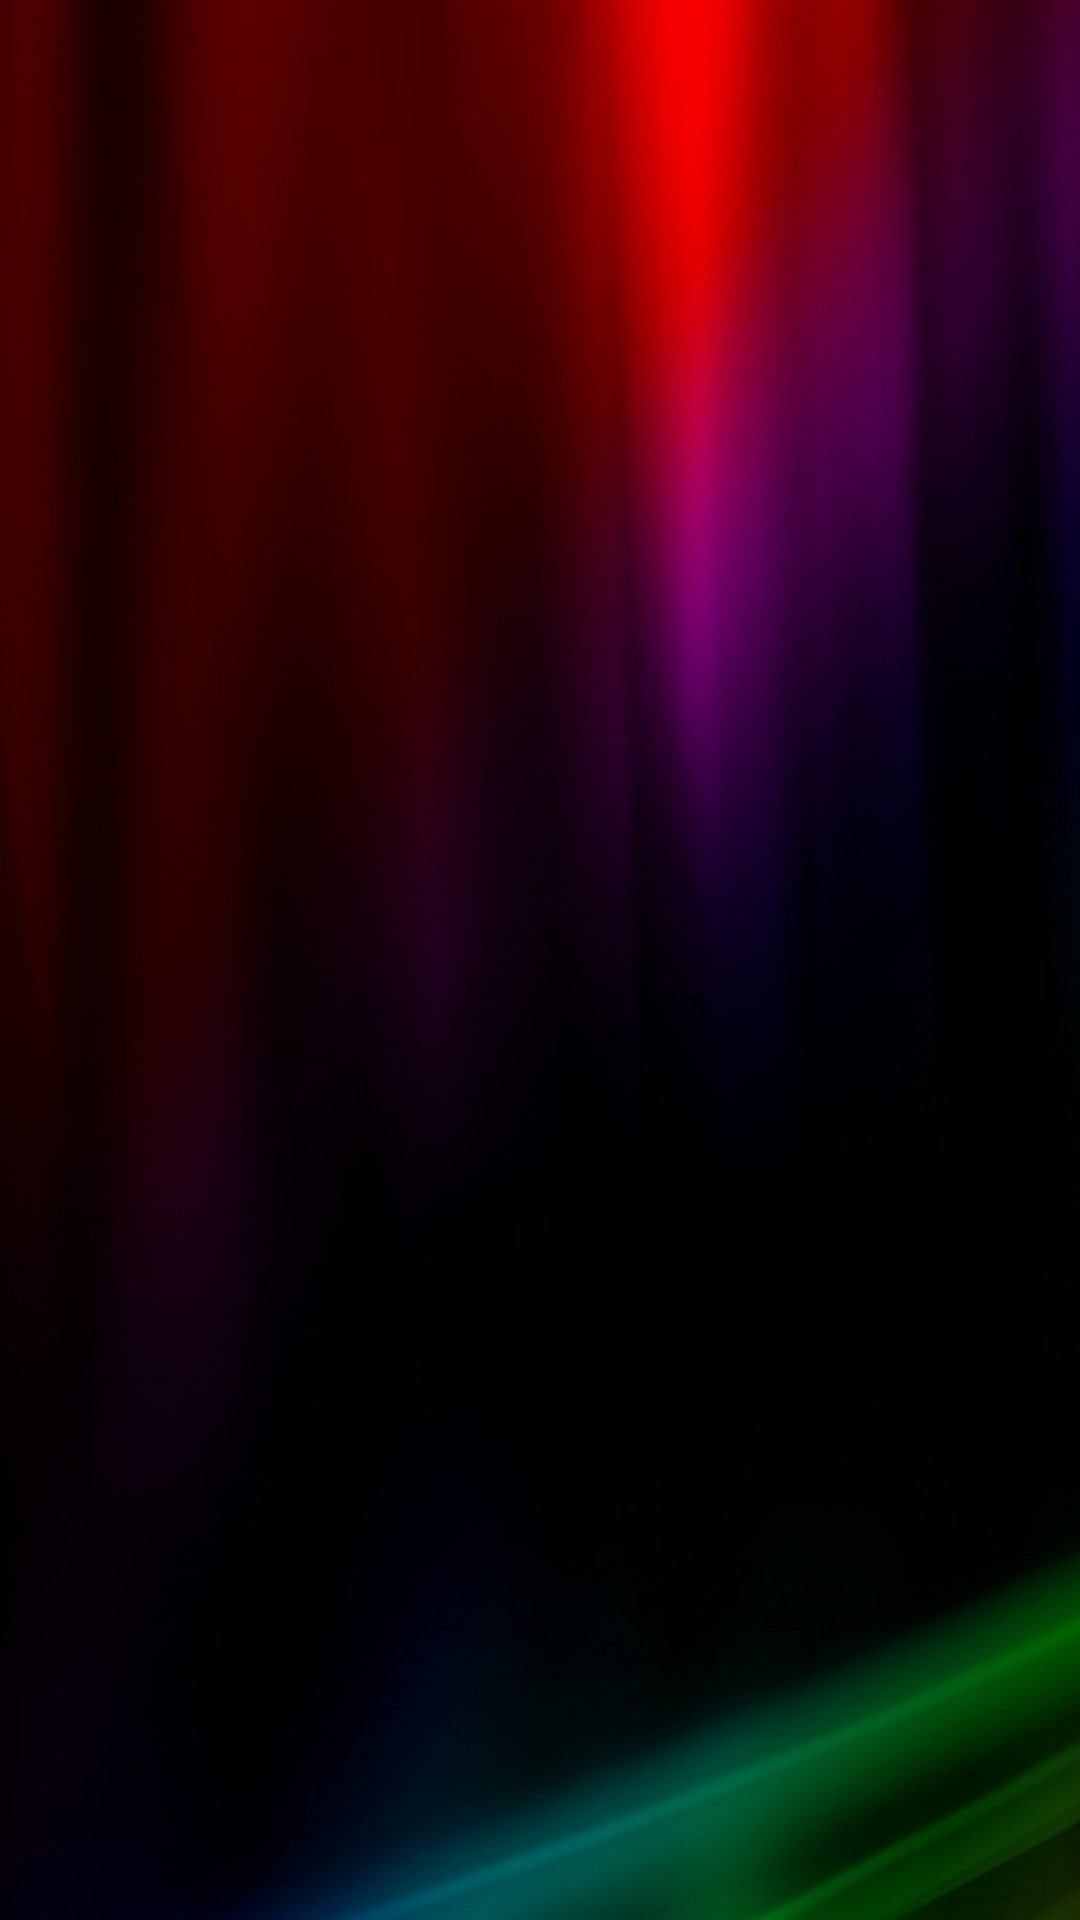 Rainbow Colors Android Wallpaper with image resolution 1080x1920 pixel. You can make this wallpaper for your Android backgrounds, Tablet, Smartphones Screensavers and Mobile Phone Lock Screen